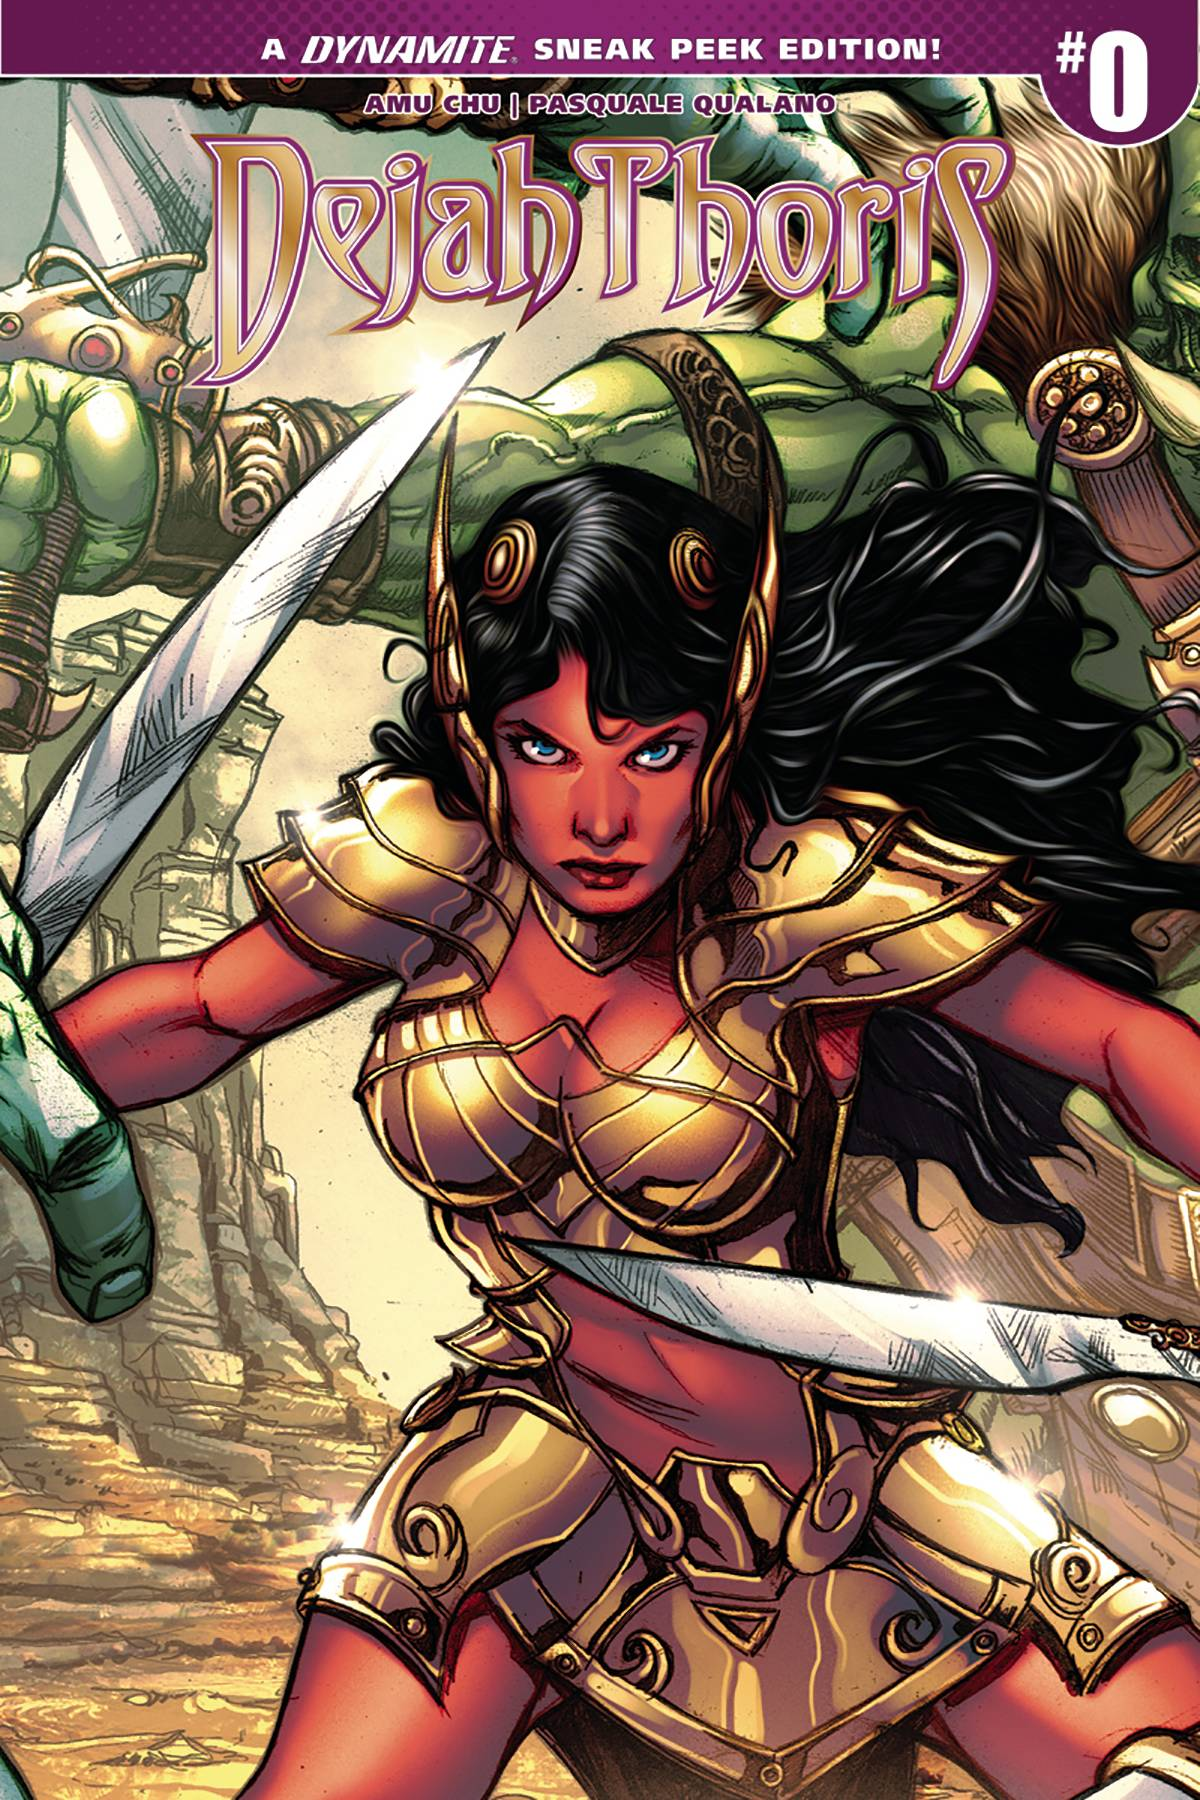 Dejah Thoris (Vol. 2)  #0 1:50 Variant